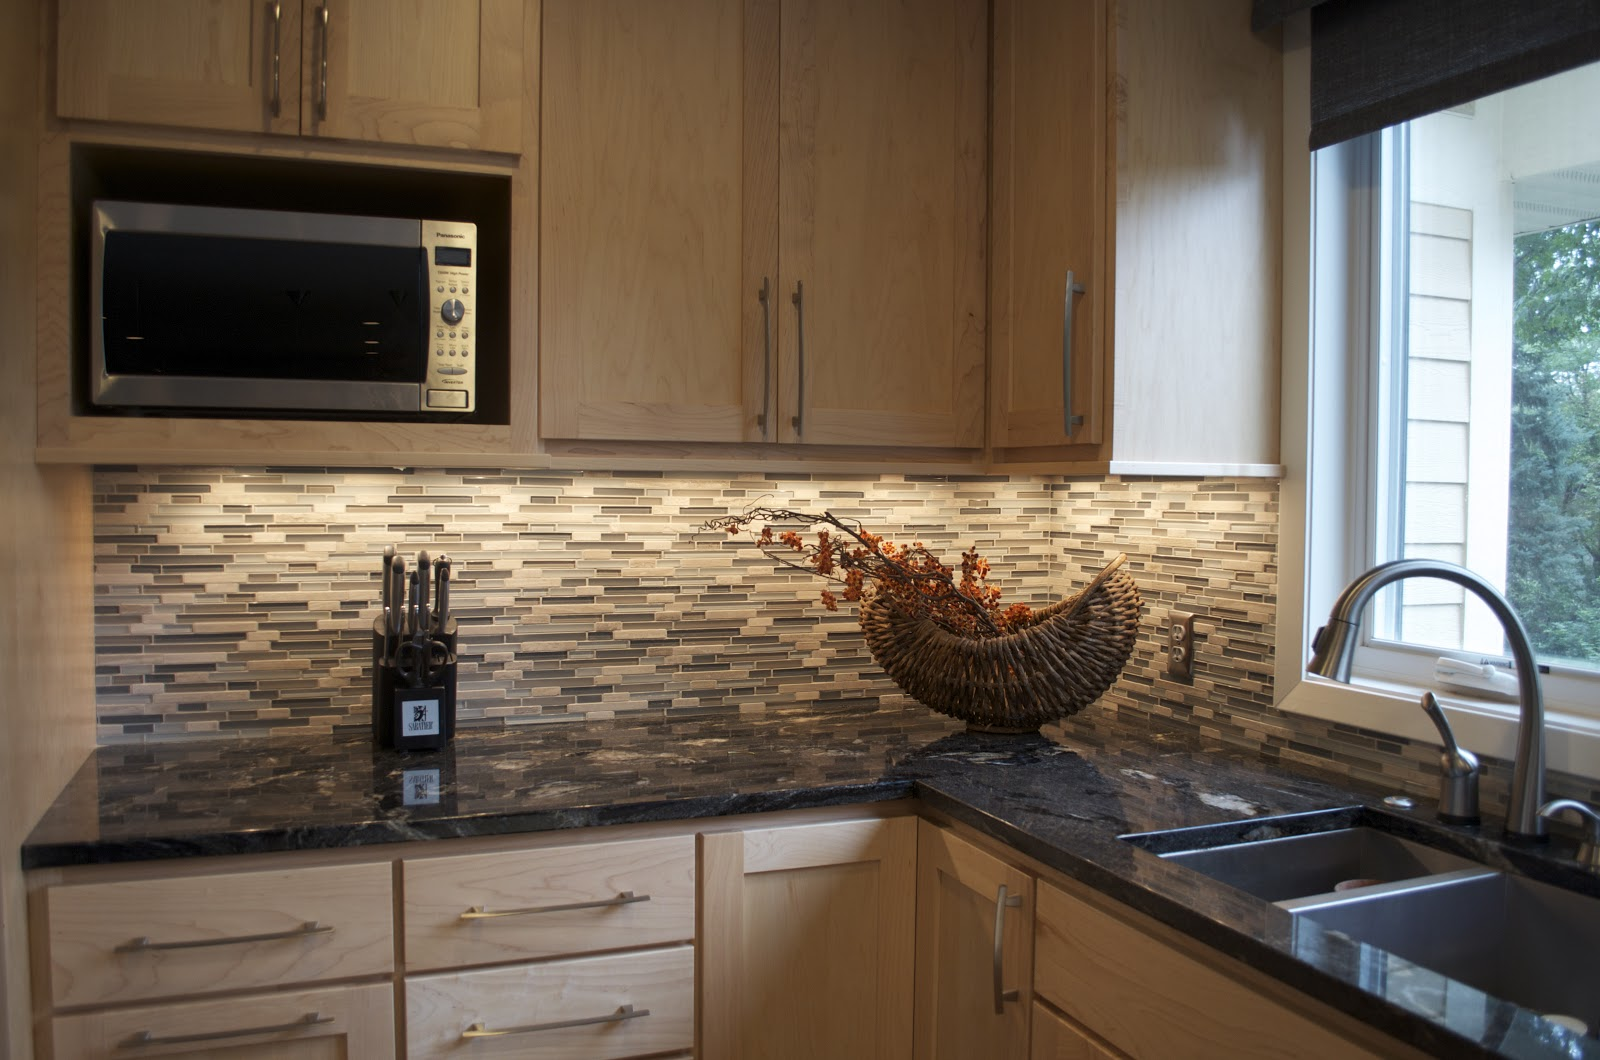 Color Me Lovely: Eclectic Vintage Color, Part 1 -- the Kitchen on Backsplash Ideas With Black Countertops  id=64320